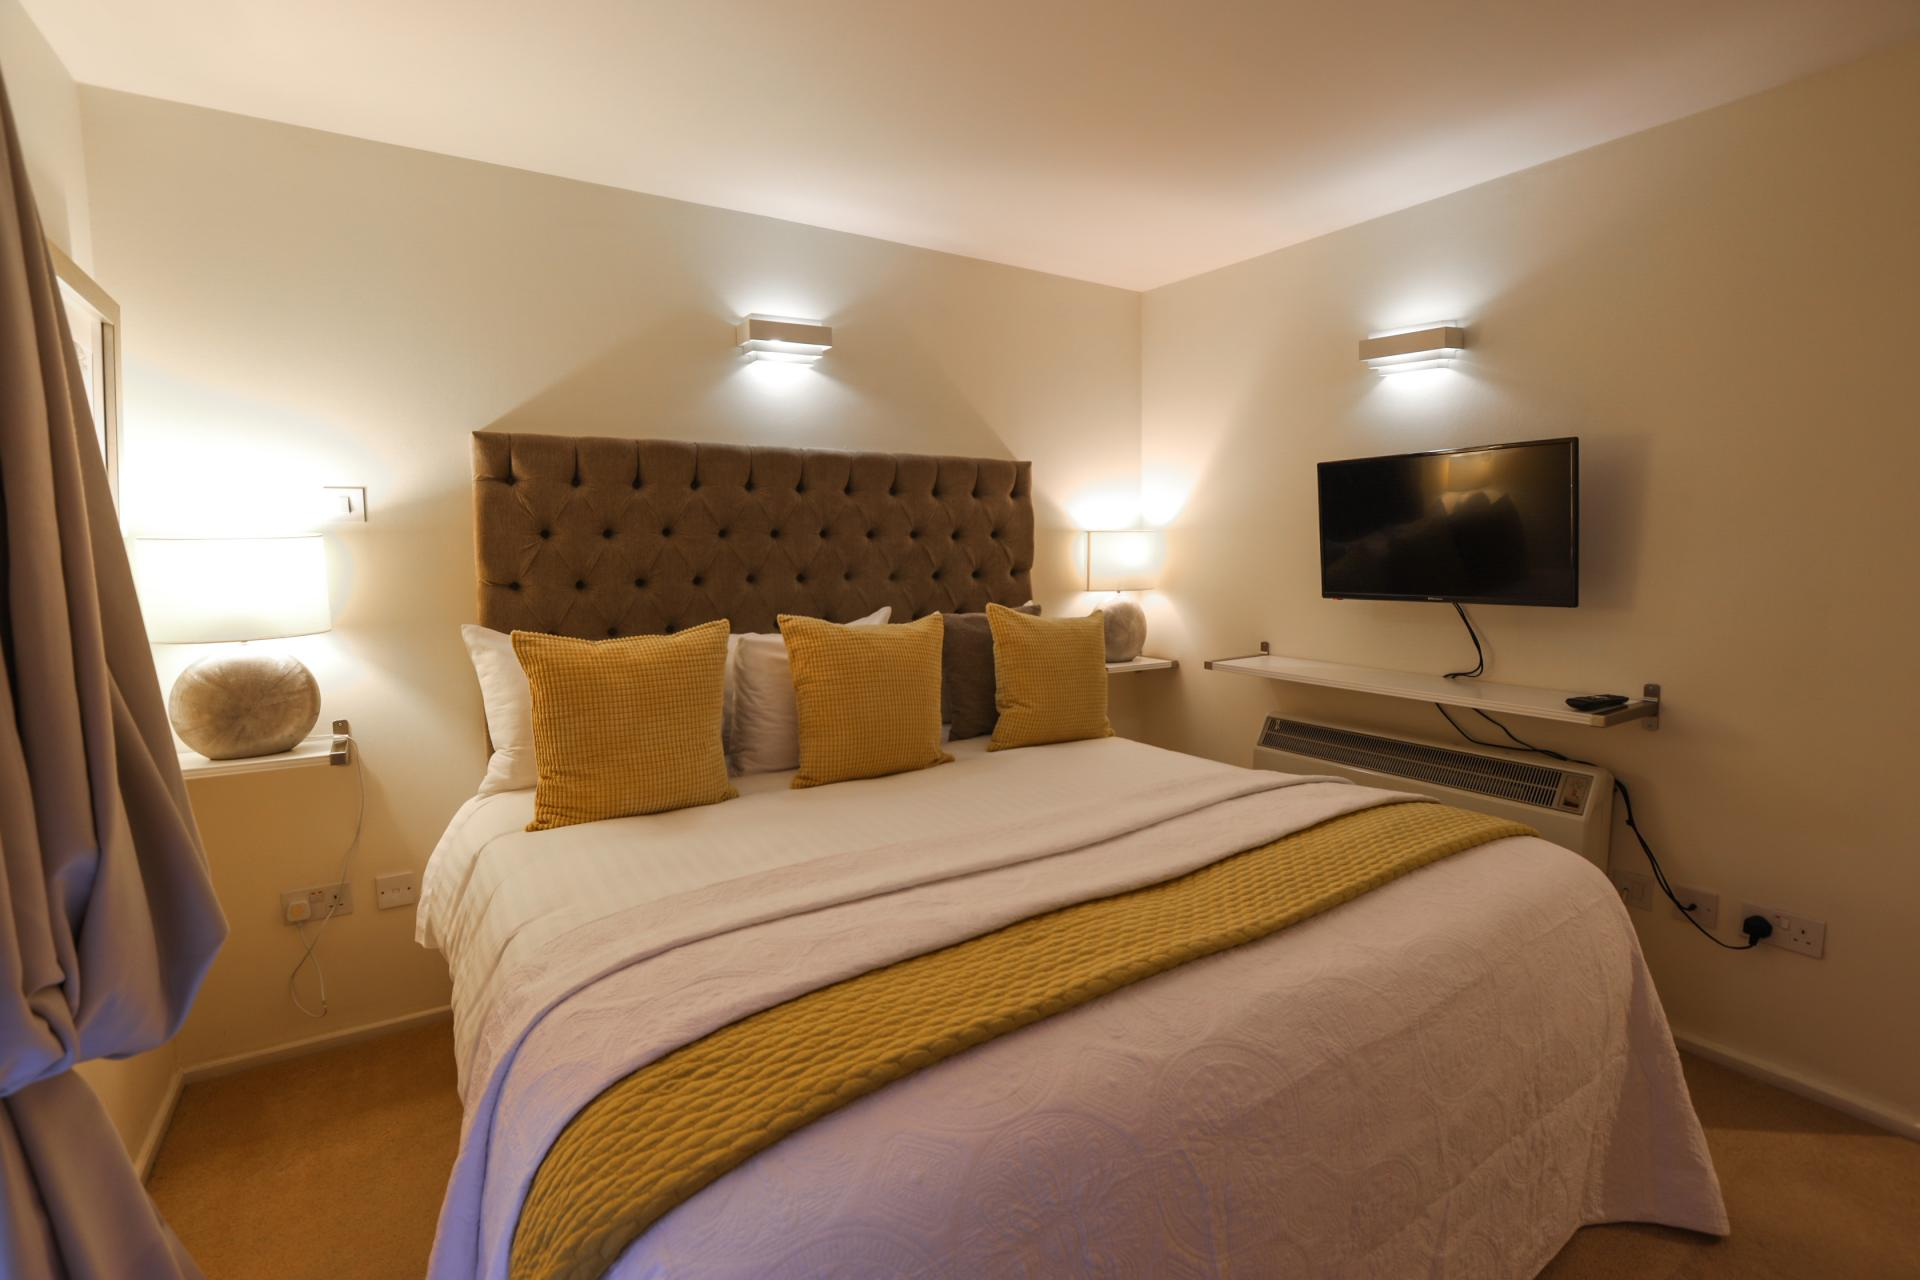 Cosy bedroom at 116 Point West Apartments, South Kensington, London